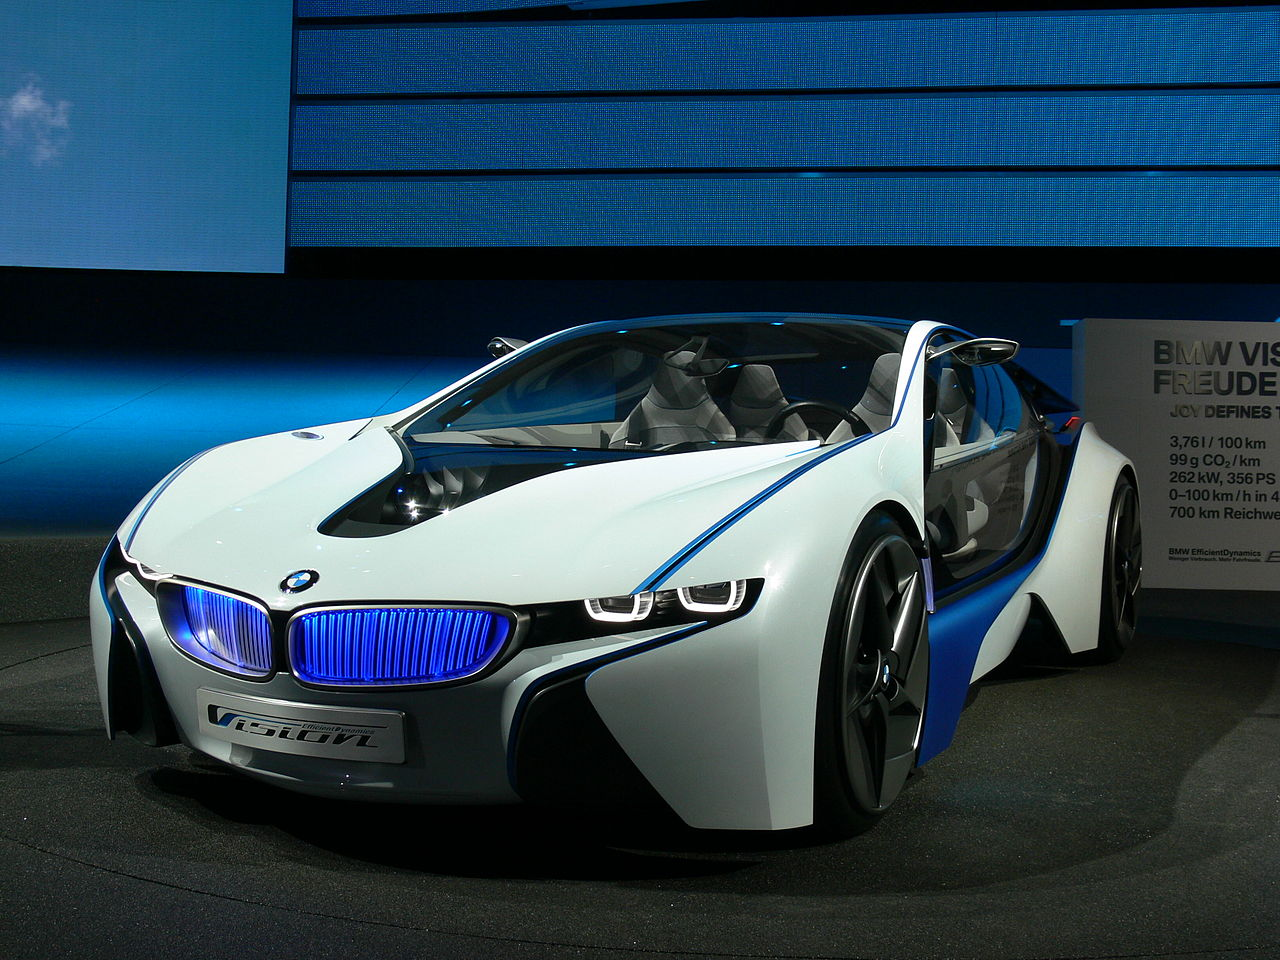 1280px-BMW_Concept_Vision_Efficient_Dyna